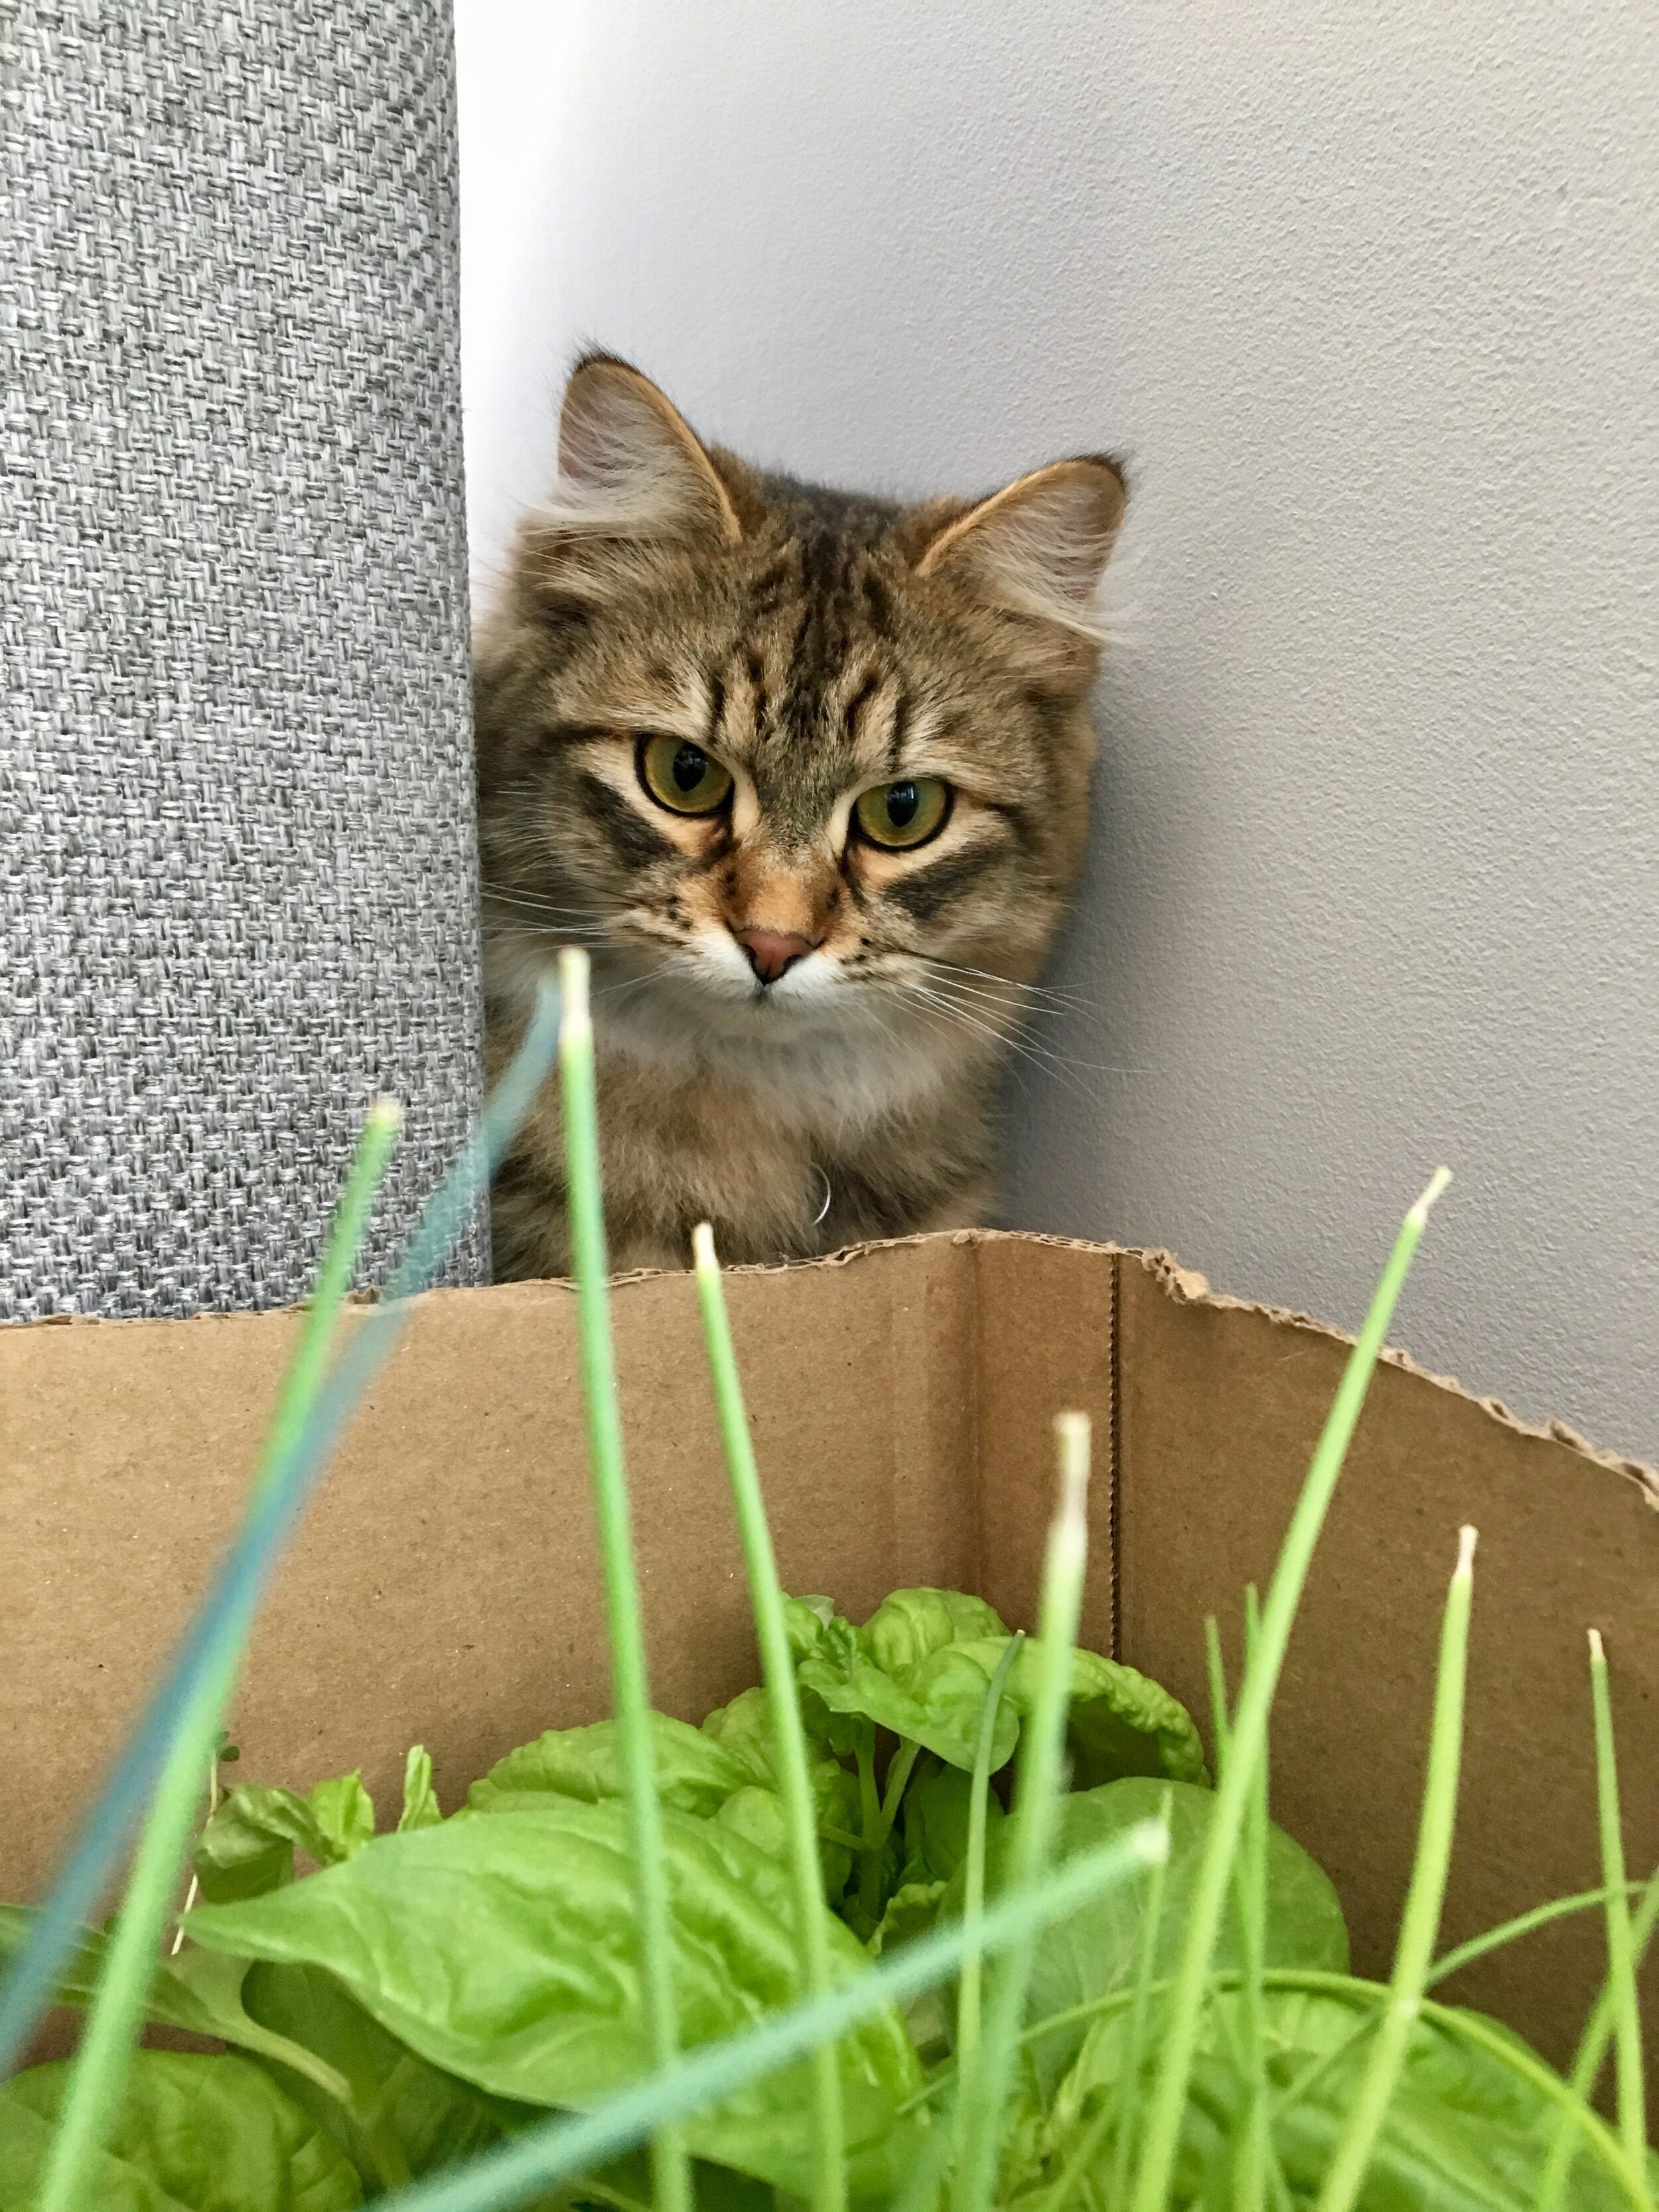 Plants make good natural hiding spots for cats. Just make sure they are not poisonous.